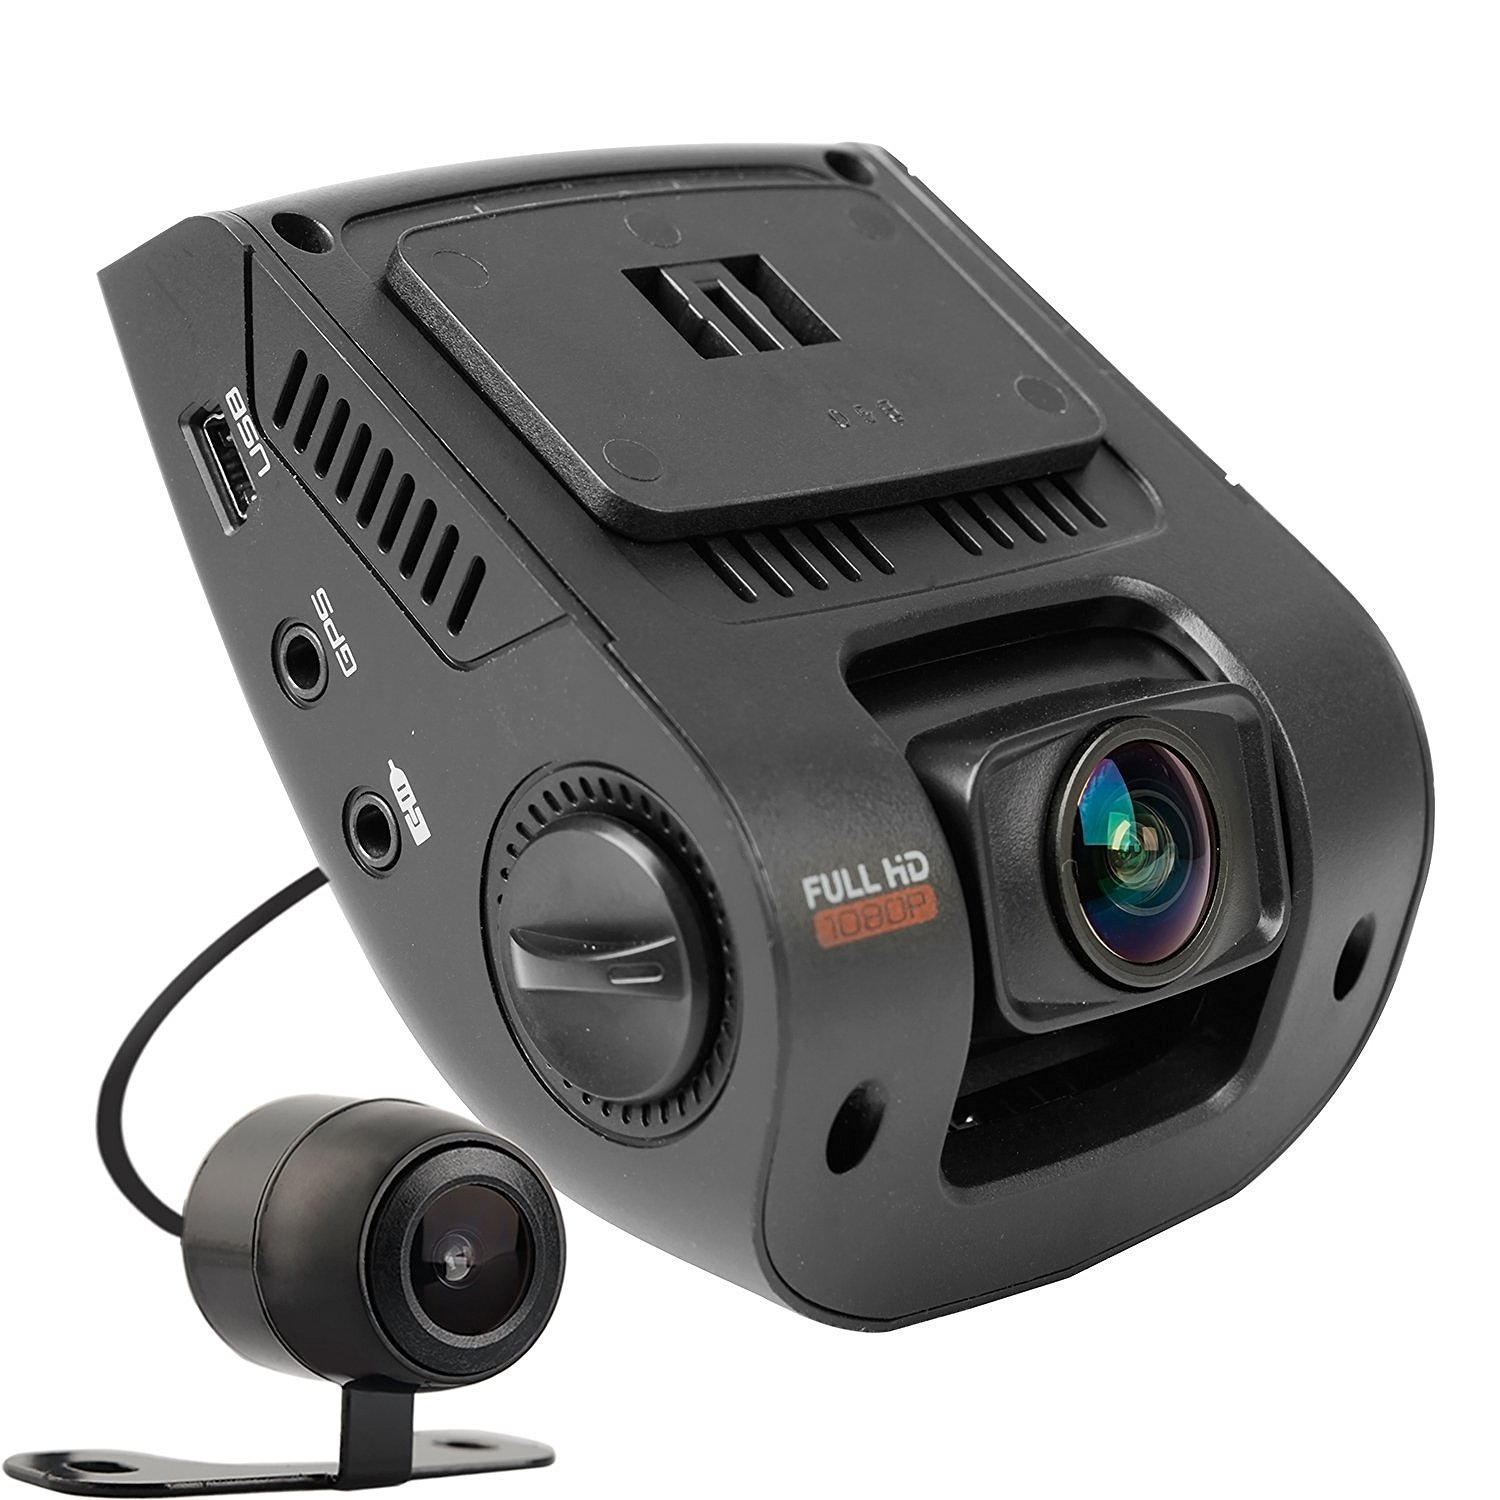 10 best car dash cam recorders car dashboard video cameras buying guide herstylecode 10 Best Car Dash Cam Recorders - Car Dashboard Video Cameras Buying Guide